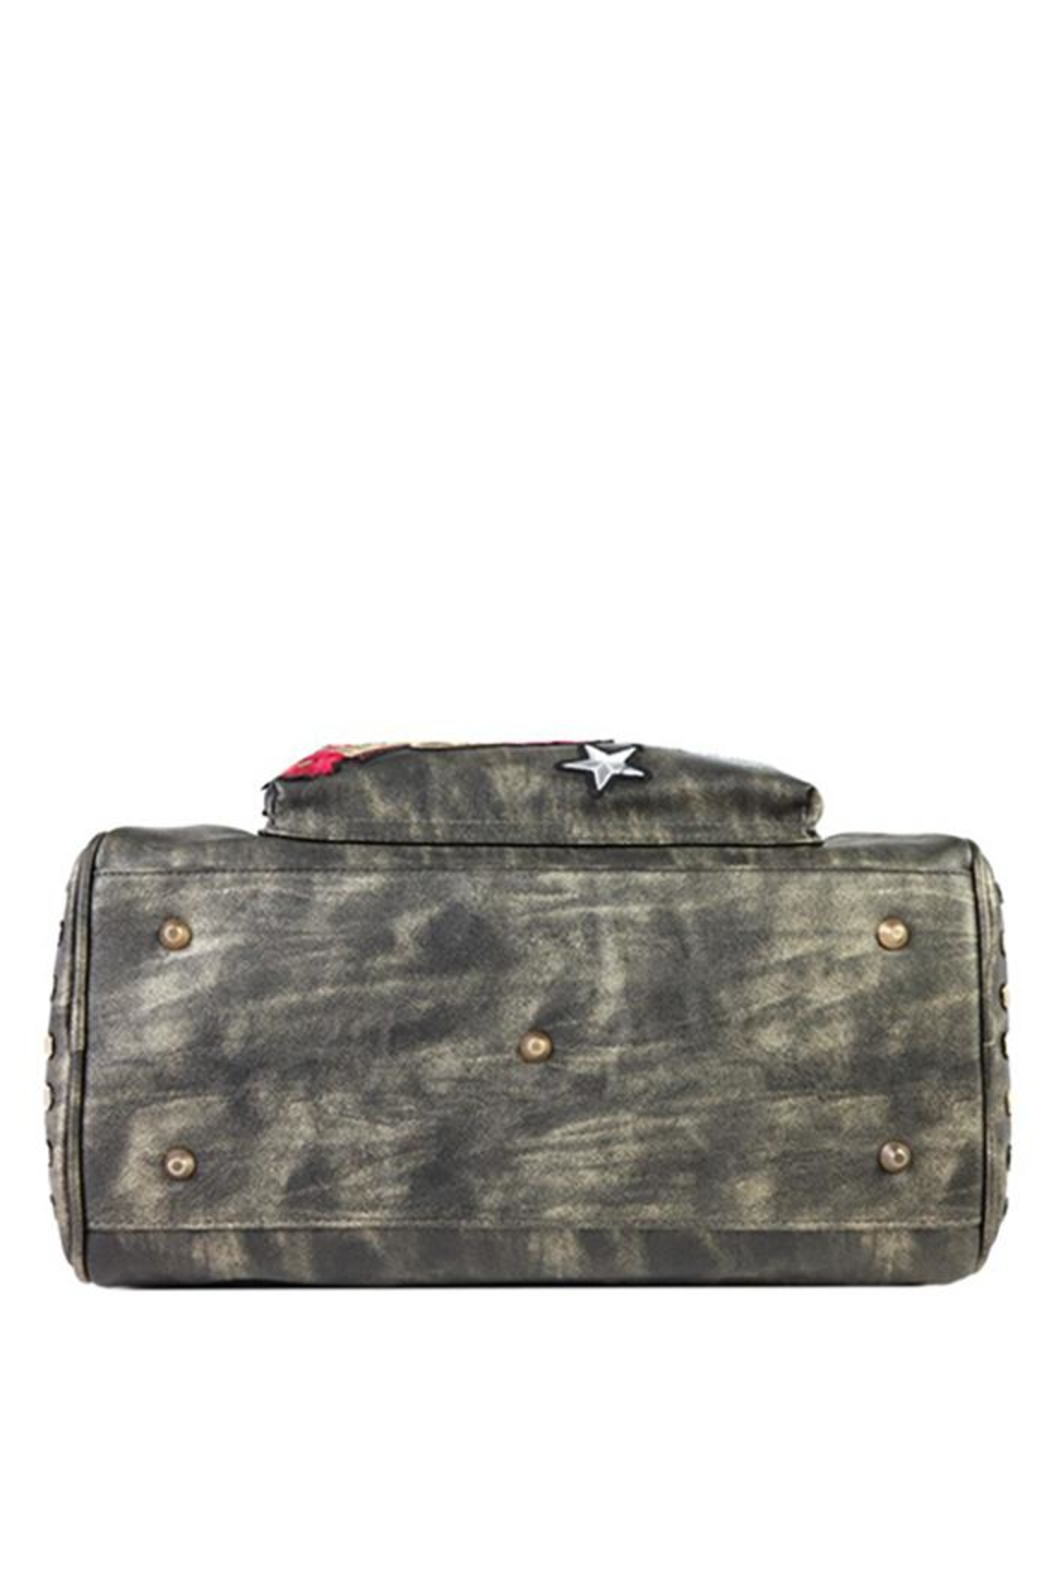 Nicole Lee Chrome Boston Bag - Back Cropped Image